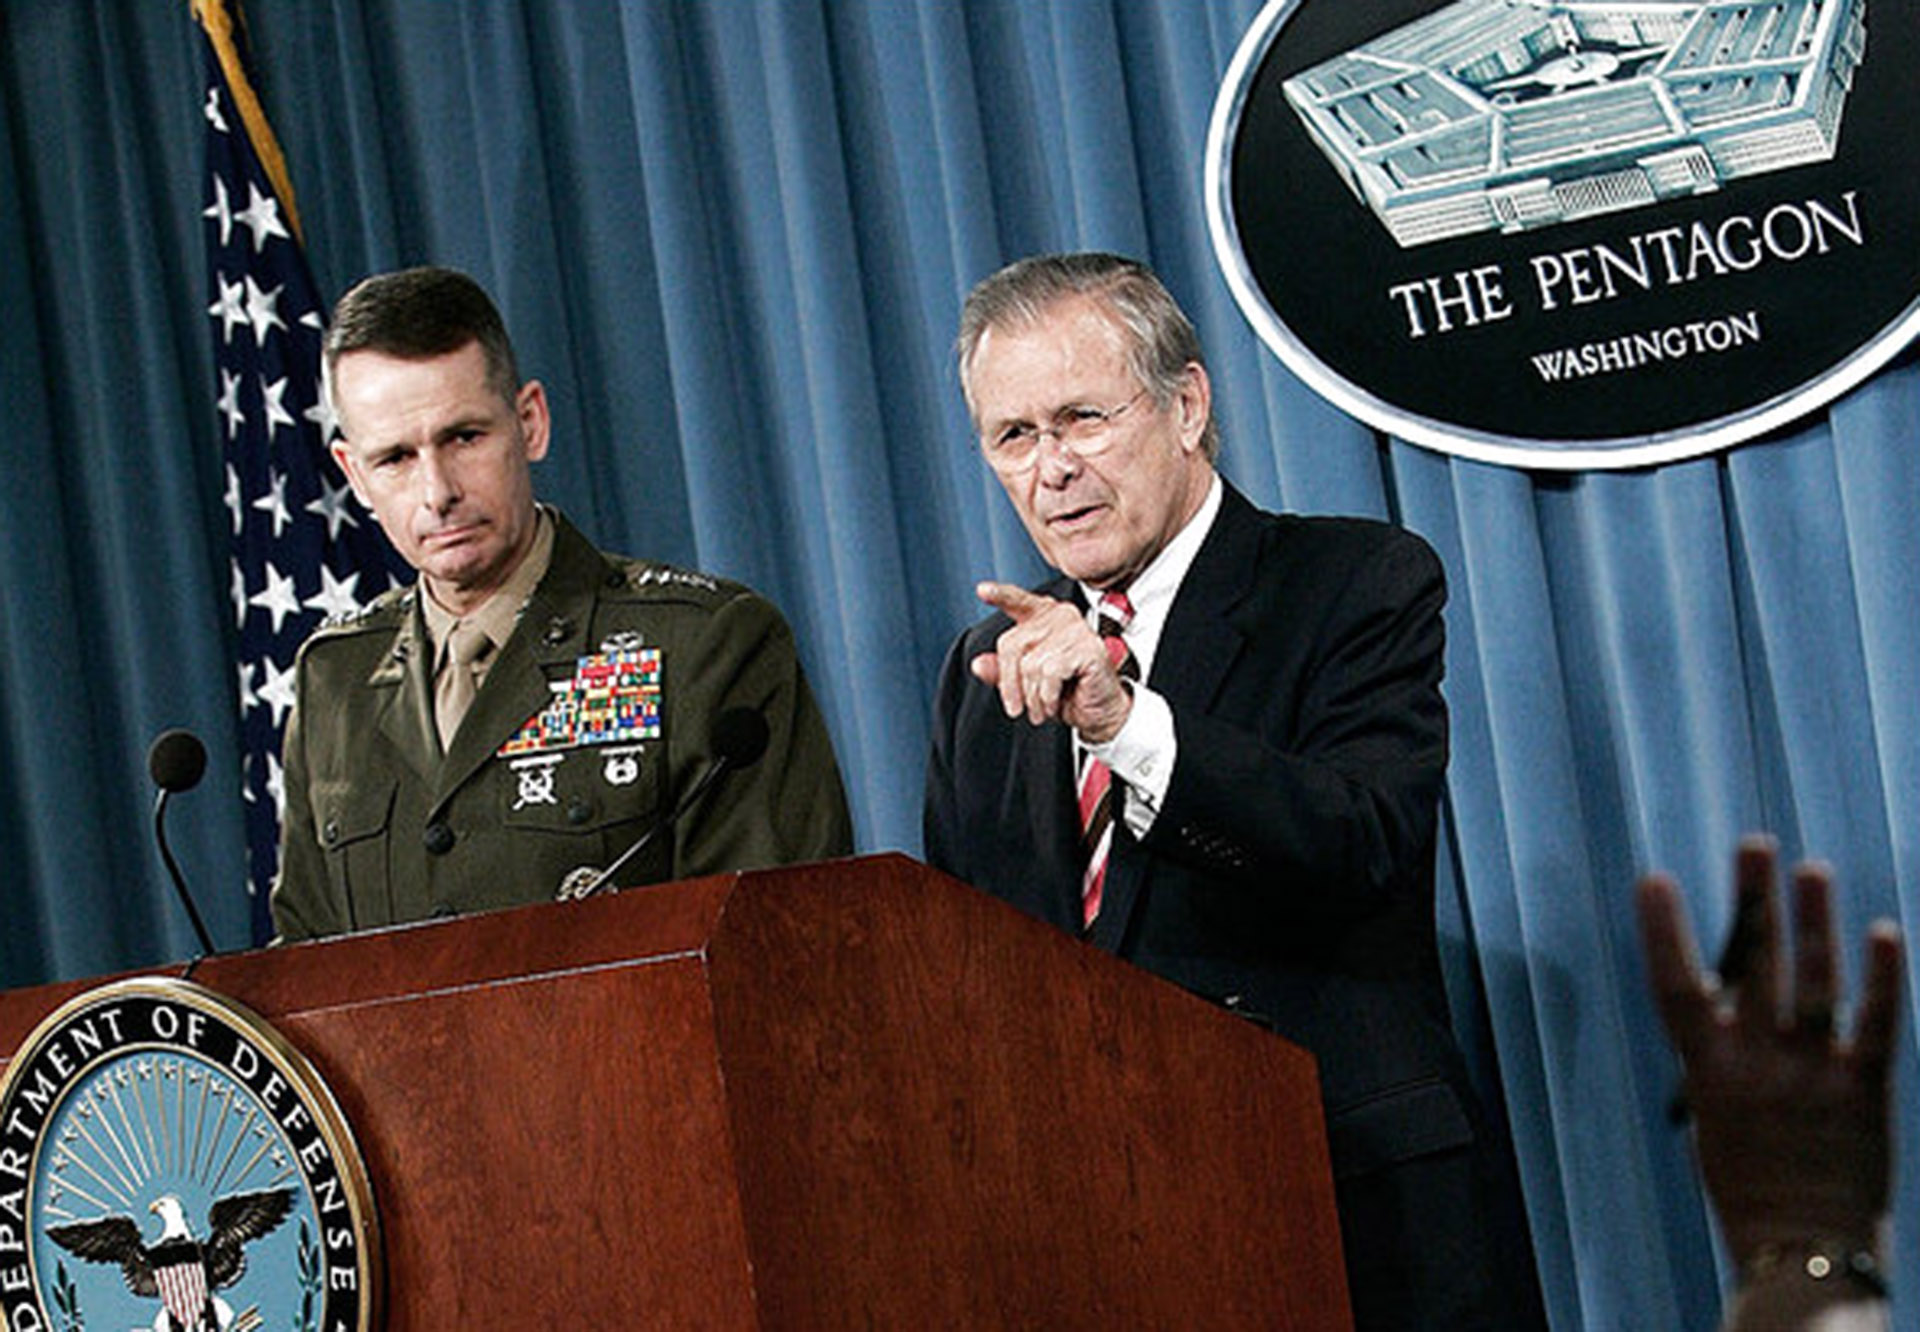 ARLINGTON, VA - APRIL 11:  U.S. Secretary of Defense Donald Rumsfeld (R) speaks as Chairman of Joint Chiefs of Staff Gen. Peter Pace (L) listens during a news briefing at the Pentagon April 11, 2006 in Arlington, Virginia. Rumsfeld refused to speculate whether there will be a military attack on Iran.  (Photo by Alex Wong/Getty Images) *** Local Caption *** Donald Rumsfeld;Peter Pace